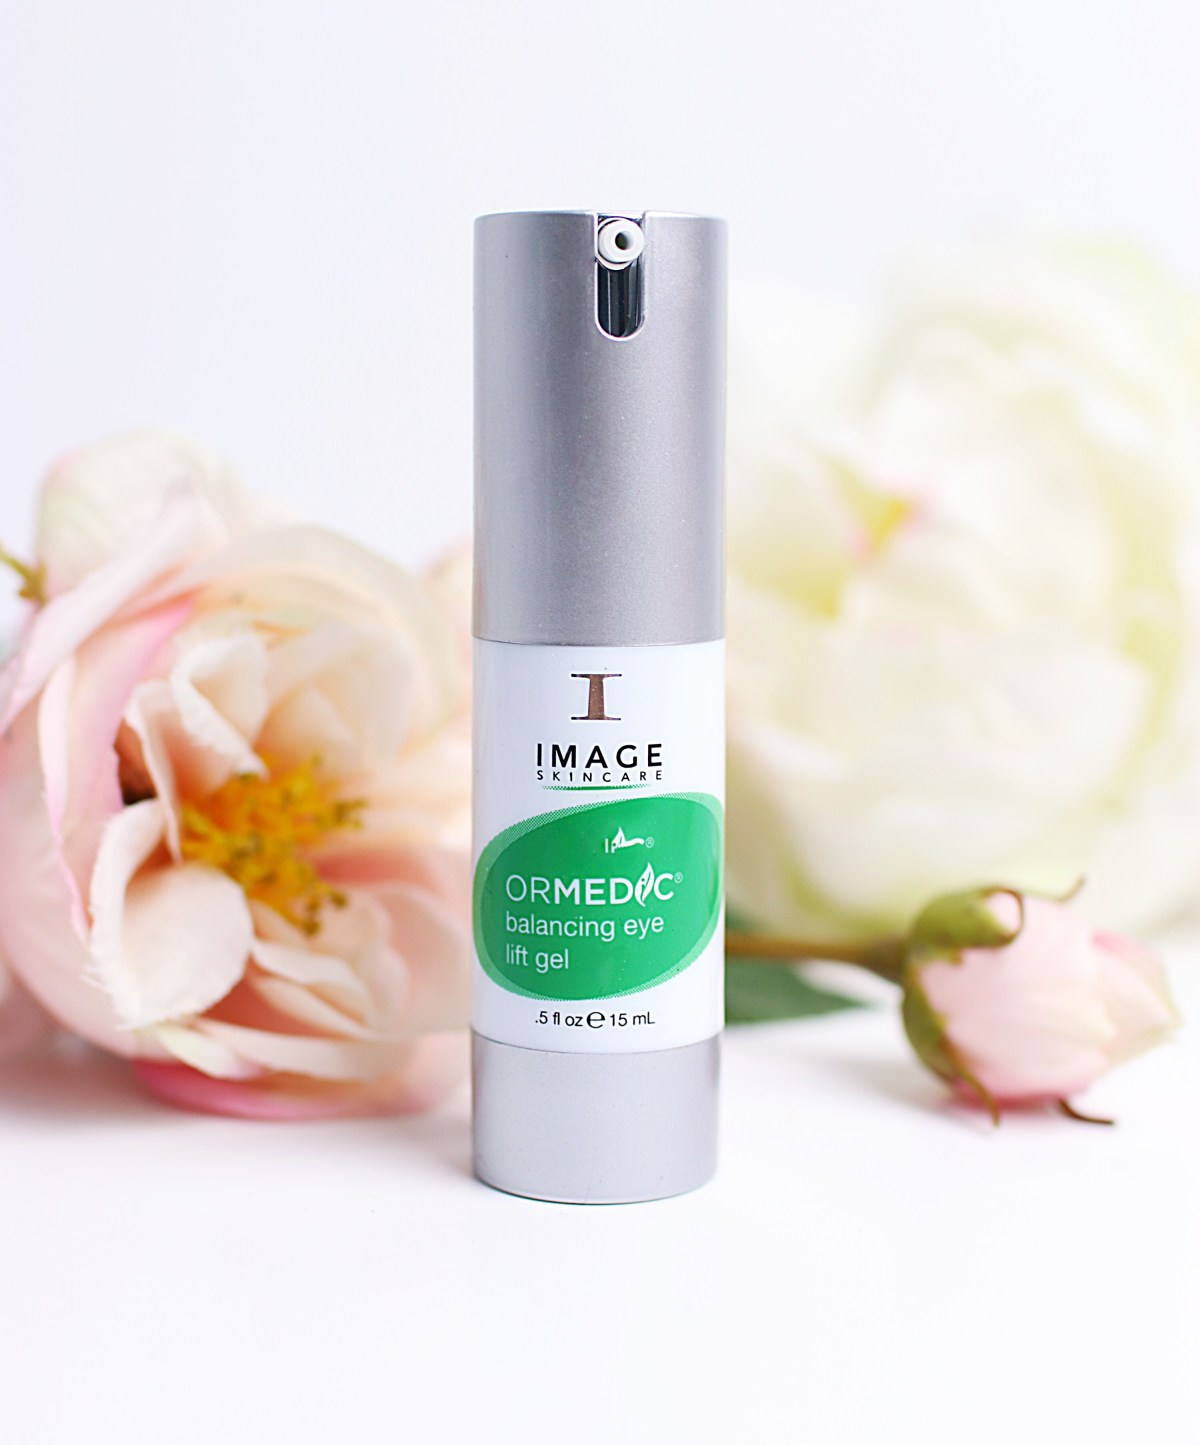 Image Skincare Ormedic Balancing Eye Lift Gel Review - Beauty Blogger - The LDN Diaries